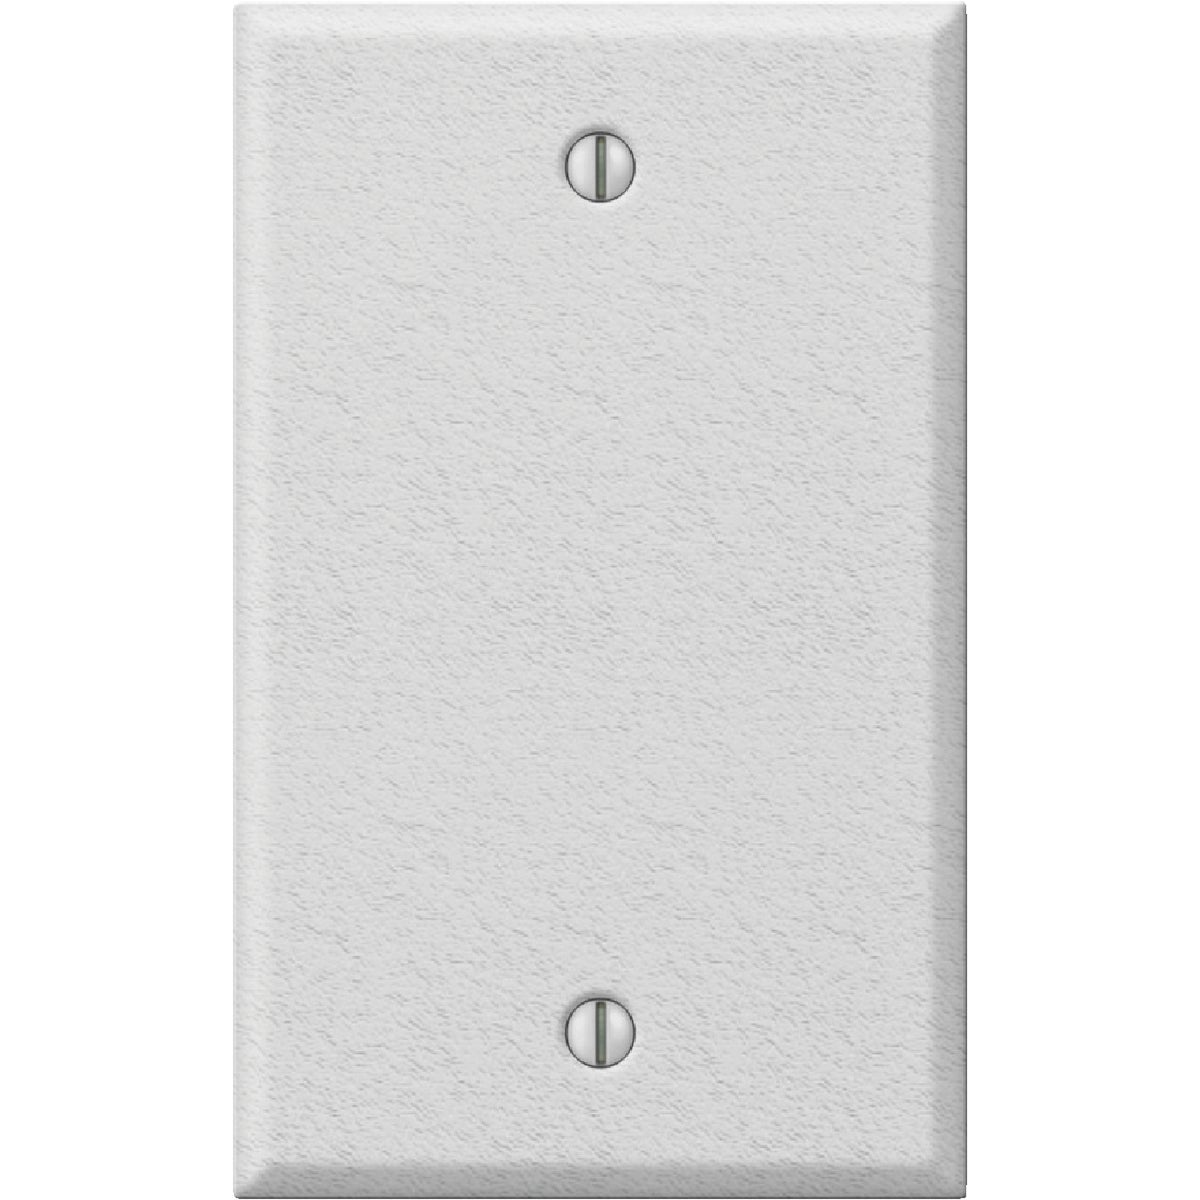 WHT BLANK STL WALL PLATE - 8WK100 by Jackson Deerfield Mf